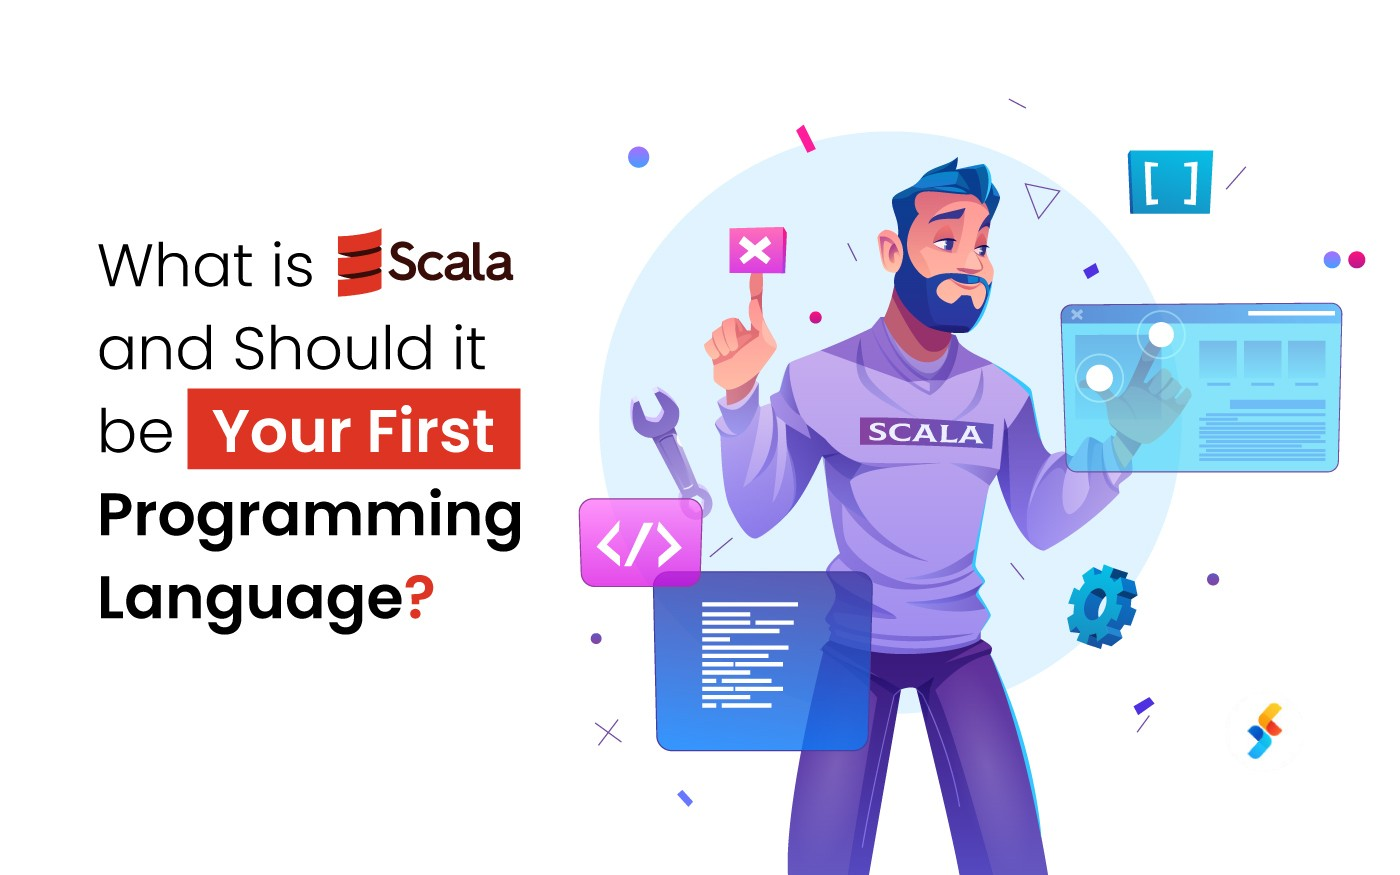 What is Scala and Should it be Your First Programming Language?